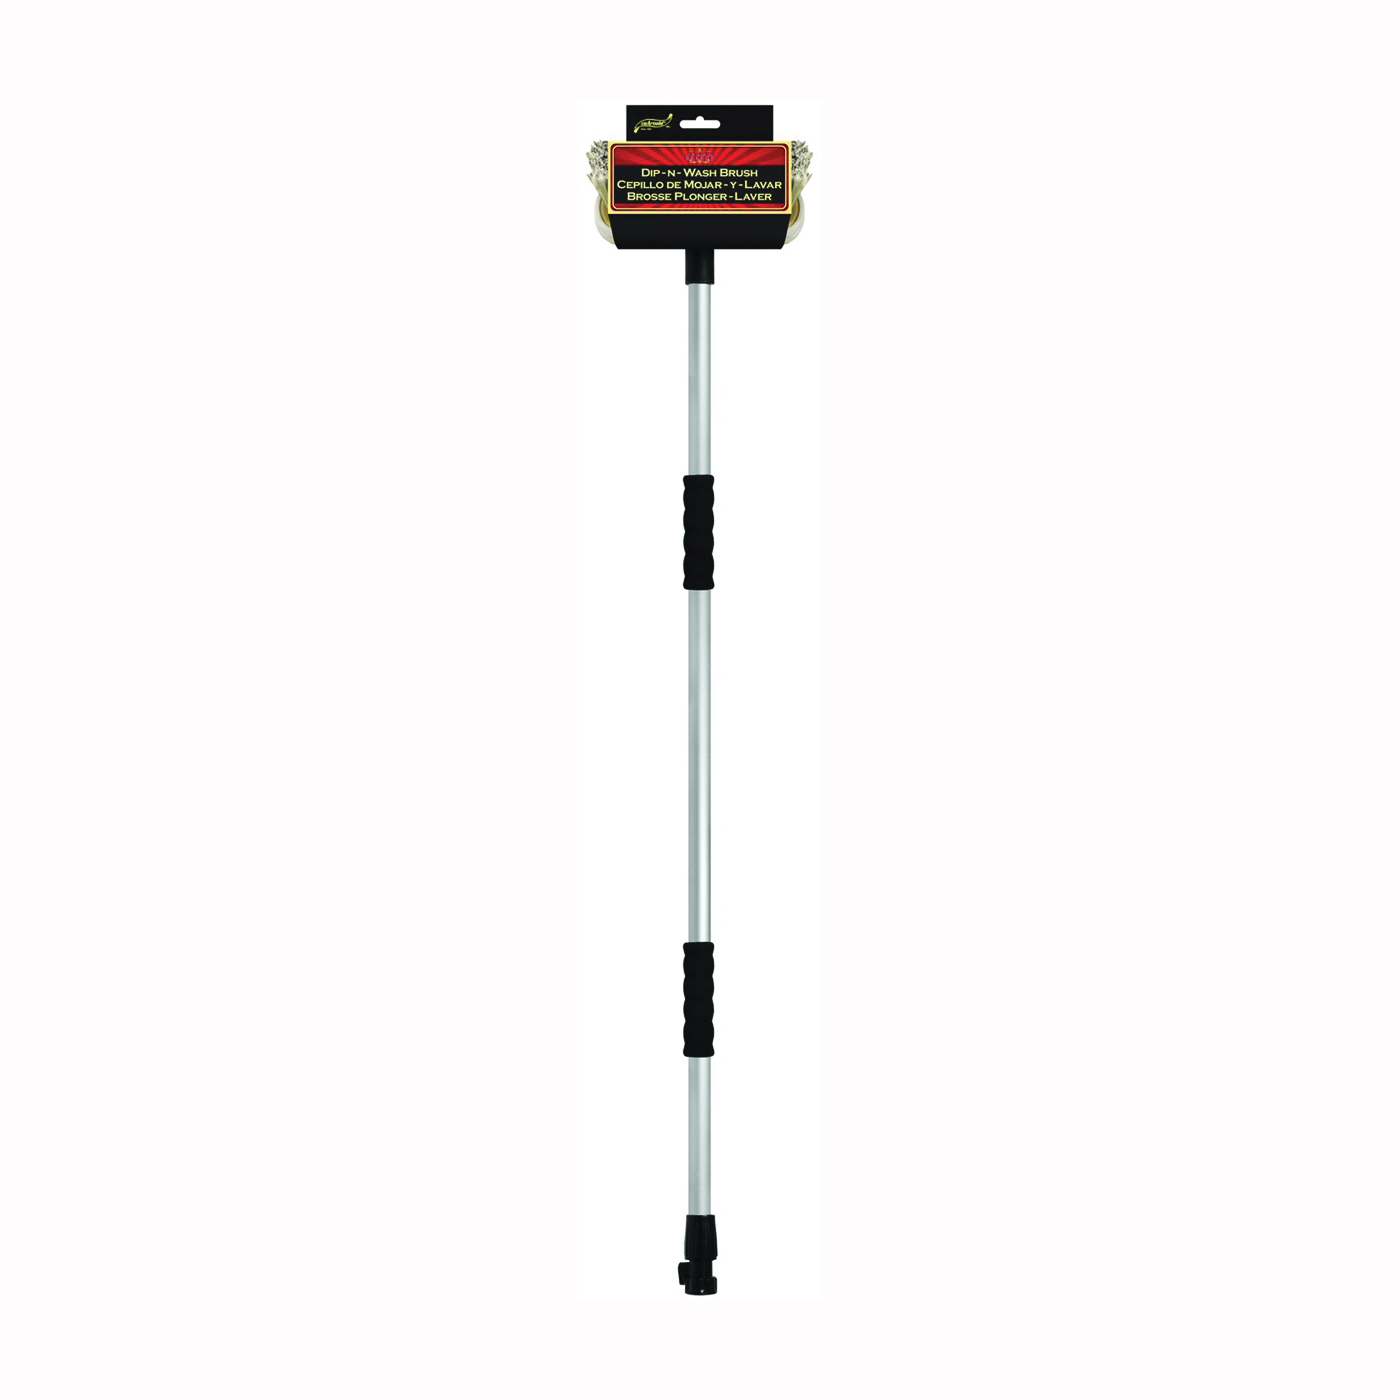 Picture of SM ARNOLD Professional 85-690 Fountain Brush, 2-1/2 in L Trim, 8 in OAL, Polystyrene Trim, Rubber Handle